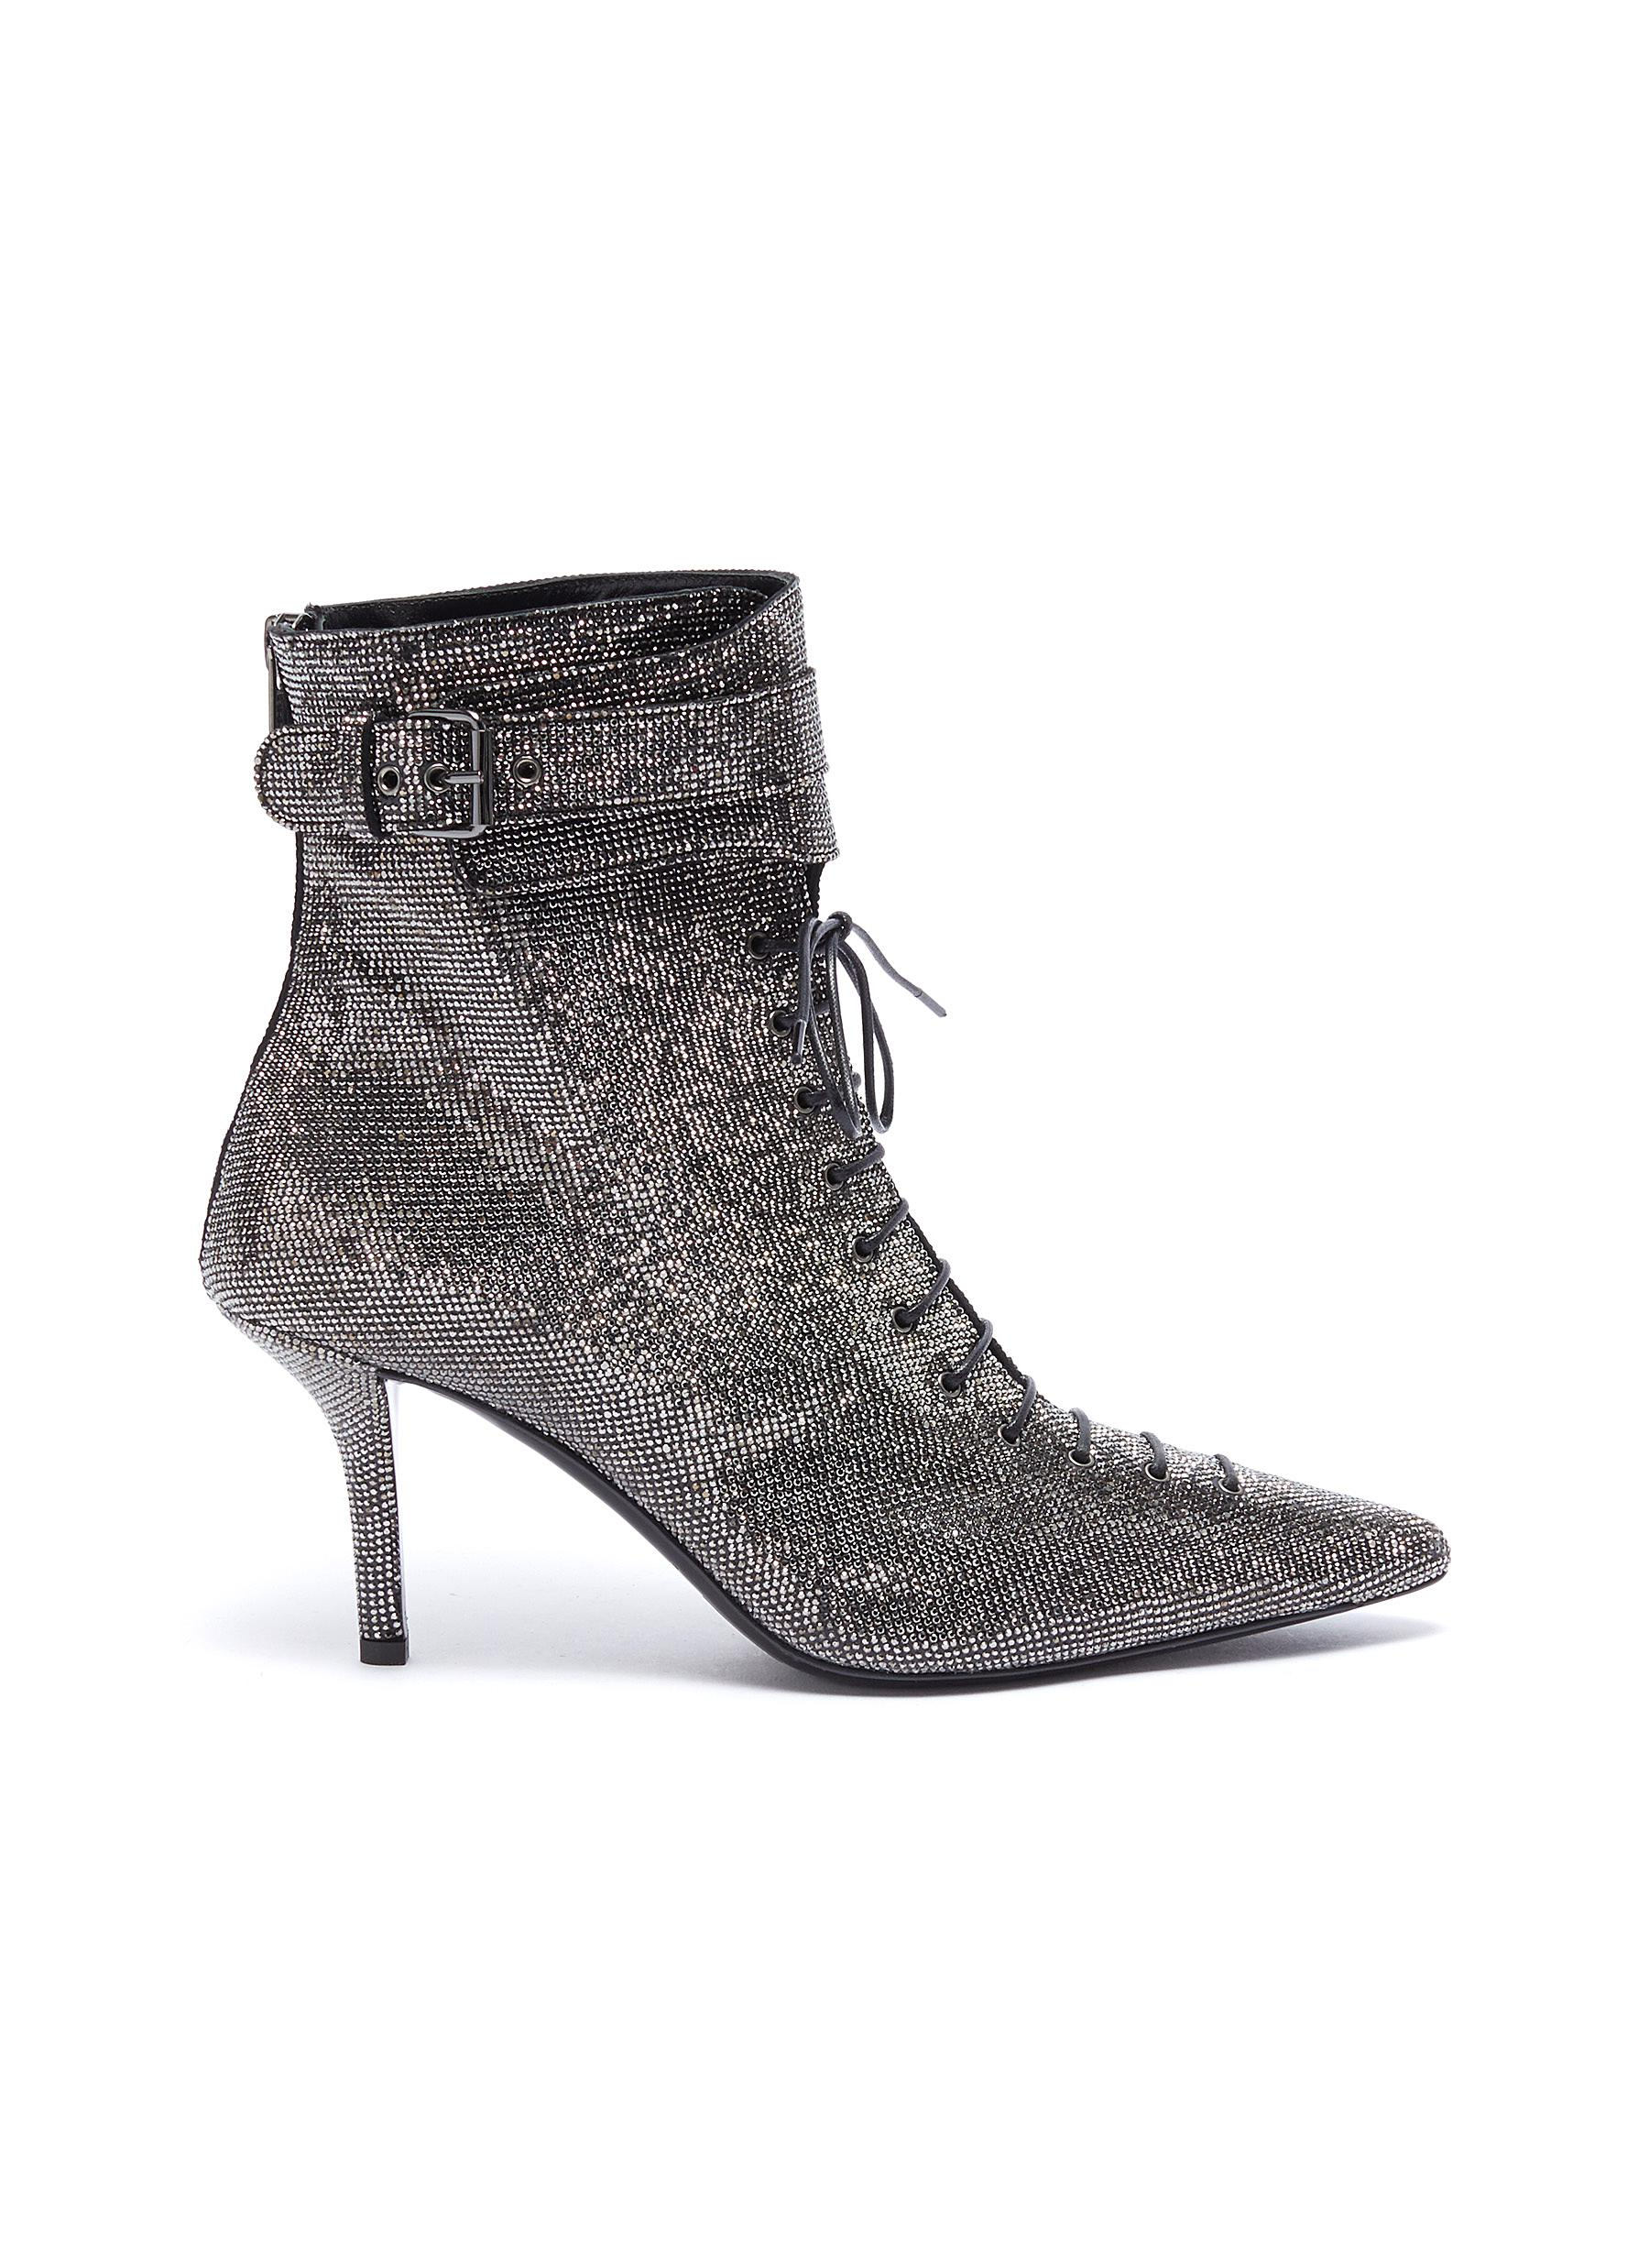 Belted cuff strass lace-up ankle boots by Philosophy Di Lorenzo Serafini